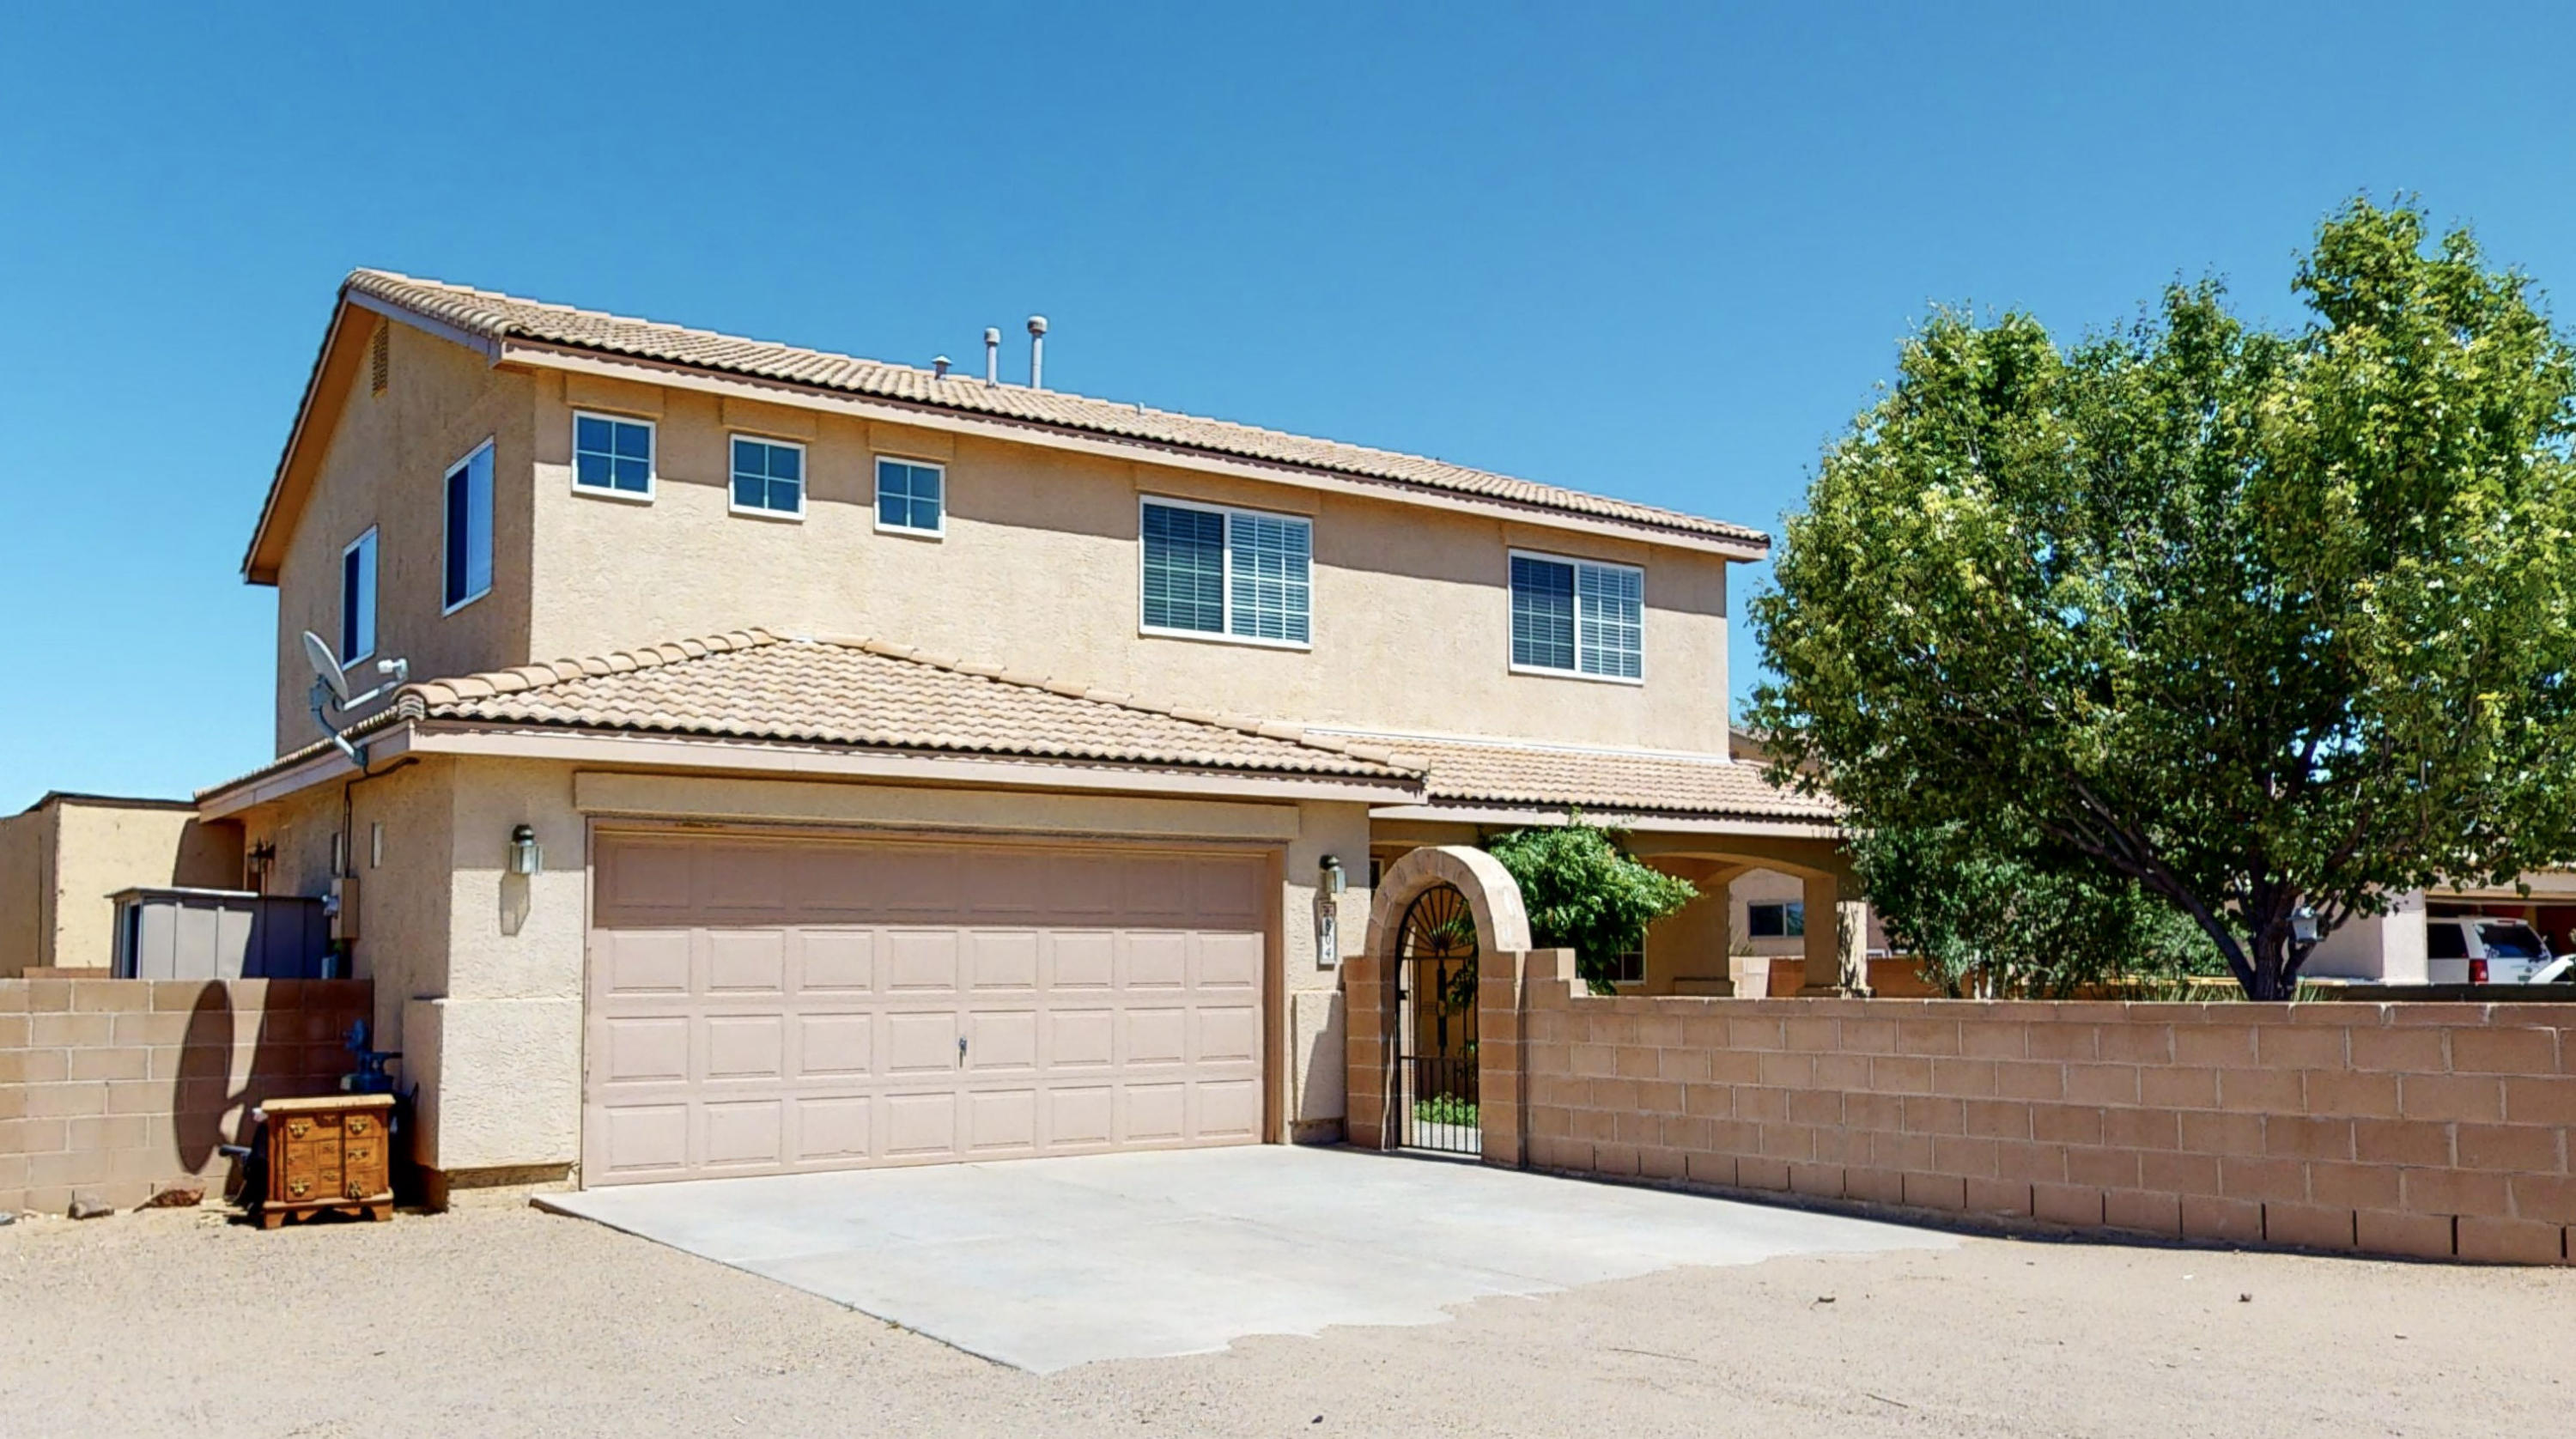 Welcome home to this magnificent home sitting on half an acre of land!The privacy and views of the sandia mountains alone are enough for you to come by and see this property in person!Come by today or check out our virtual tour!